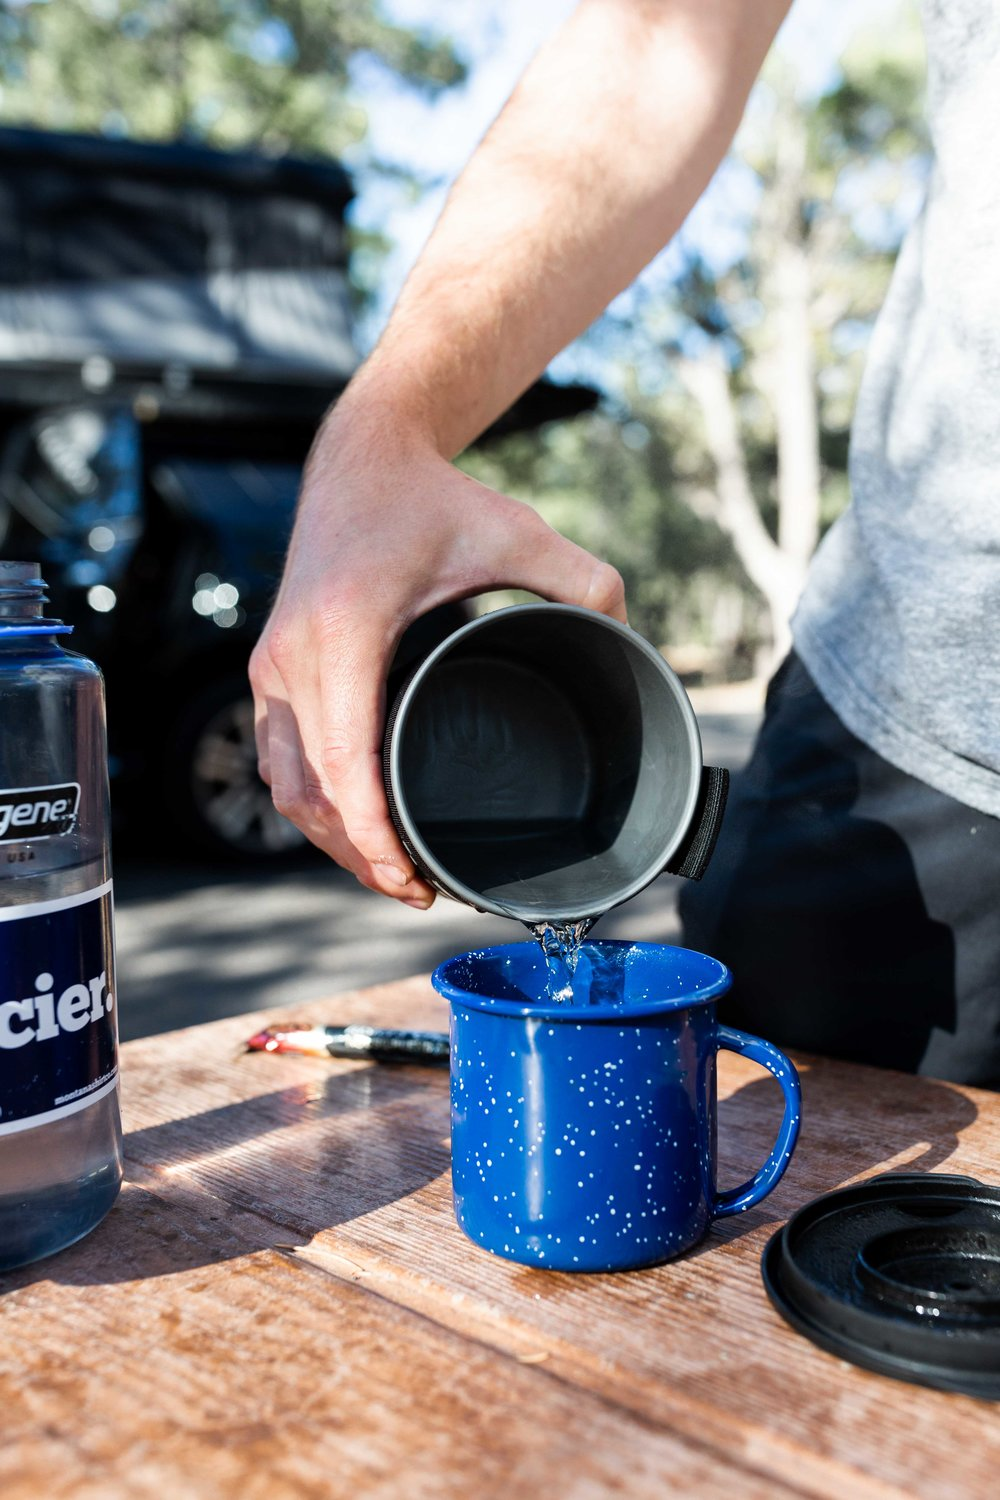 making coffee national park camping